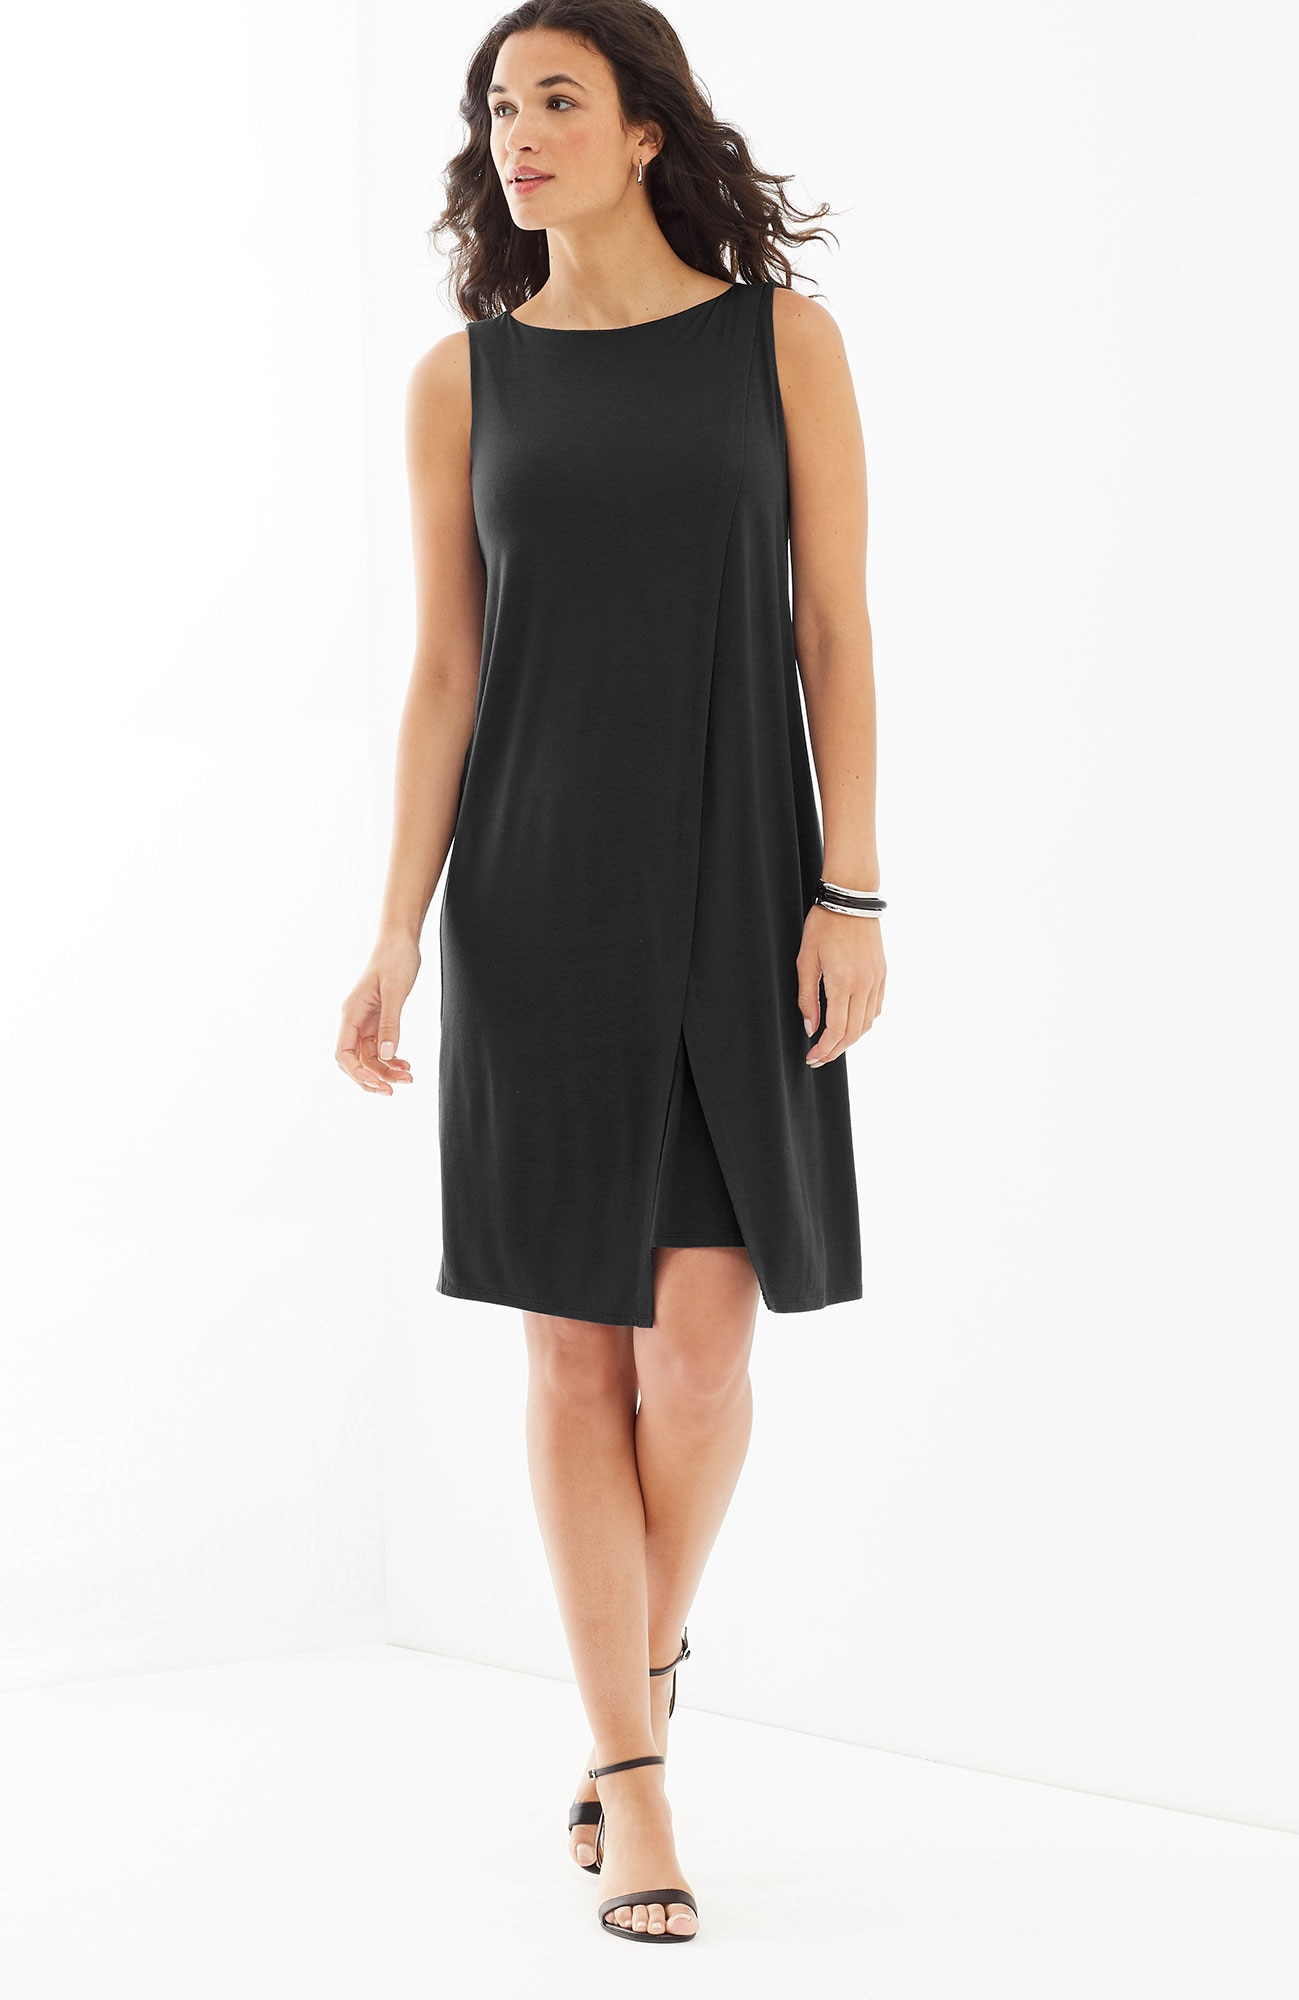 Wearever layered tank dress